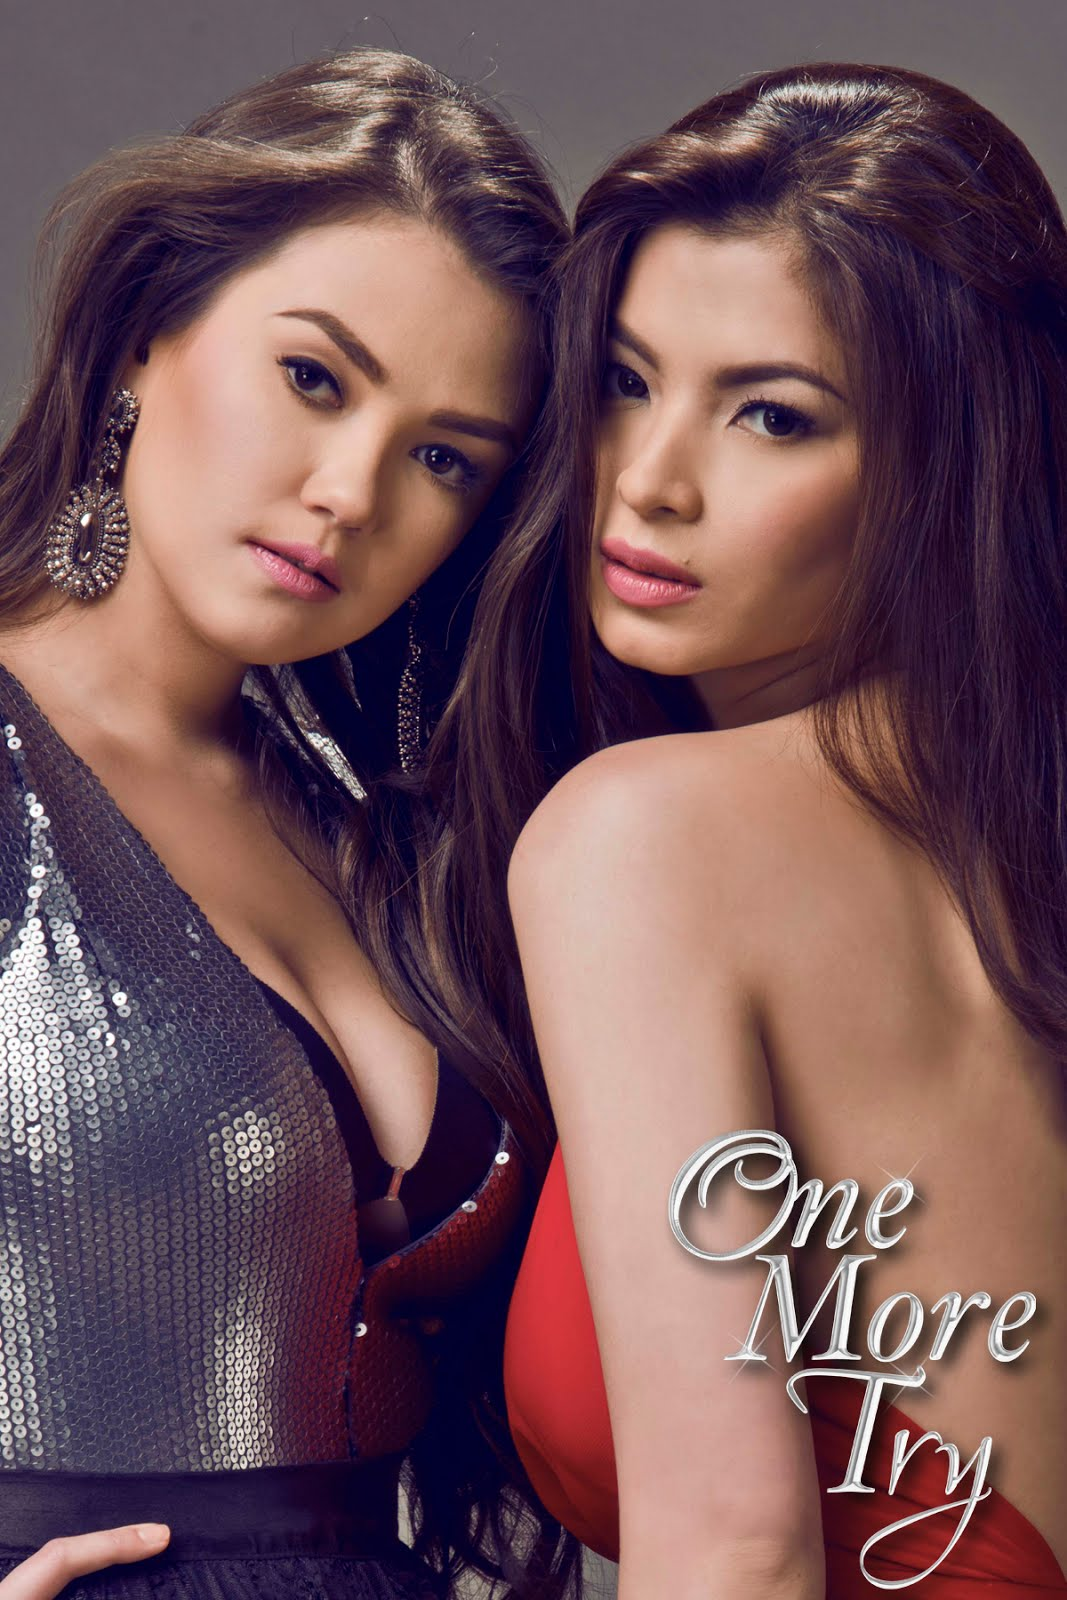 One More Try (2012) Movie free download